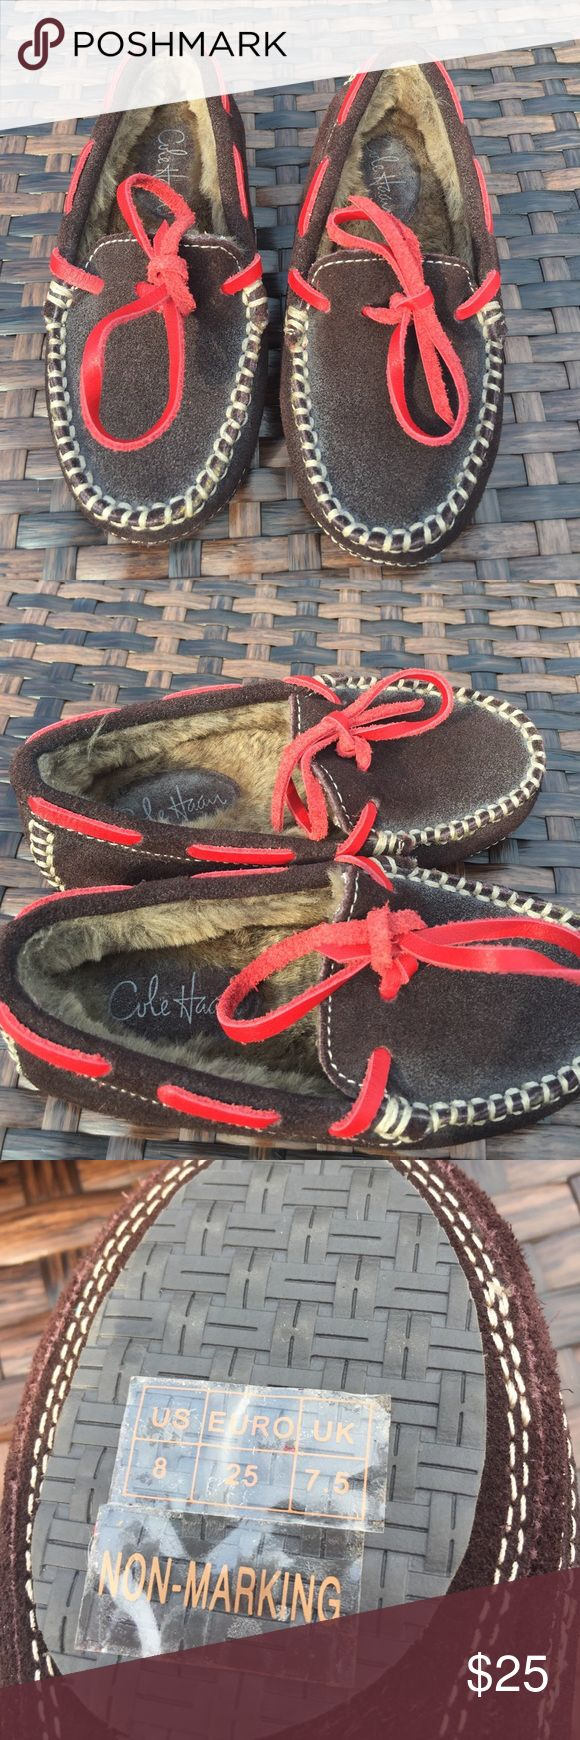 NWOT Cole Hann Moccasins / Slippers 8 NWOT Cole Hann Moccasins Slippers,size 8, fur-lined, tied with the red leather bow, they could be worn by a girl or a boy but I would lean more towards a boy. These were never worn. Cole Haan Shoes Moccasins